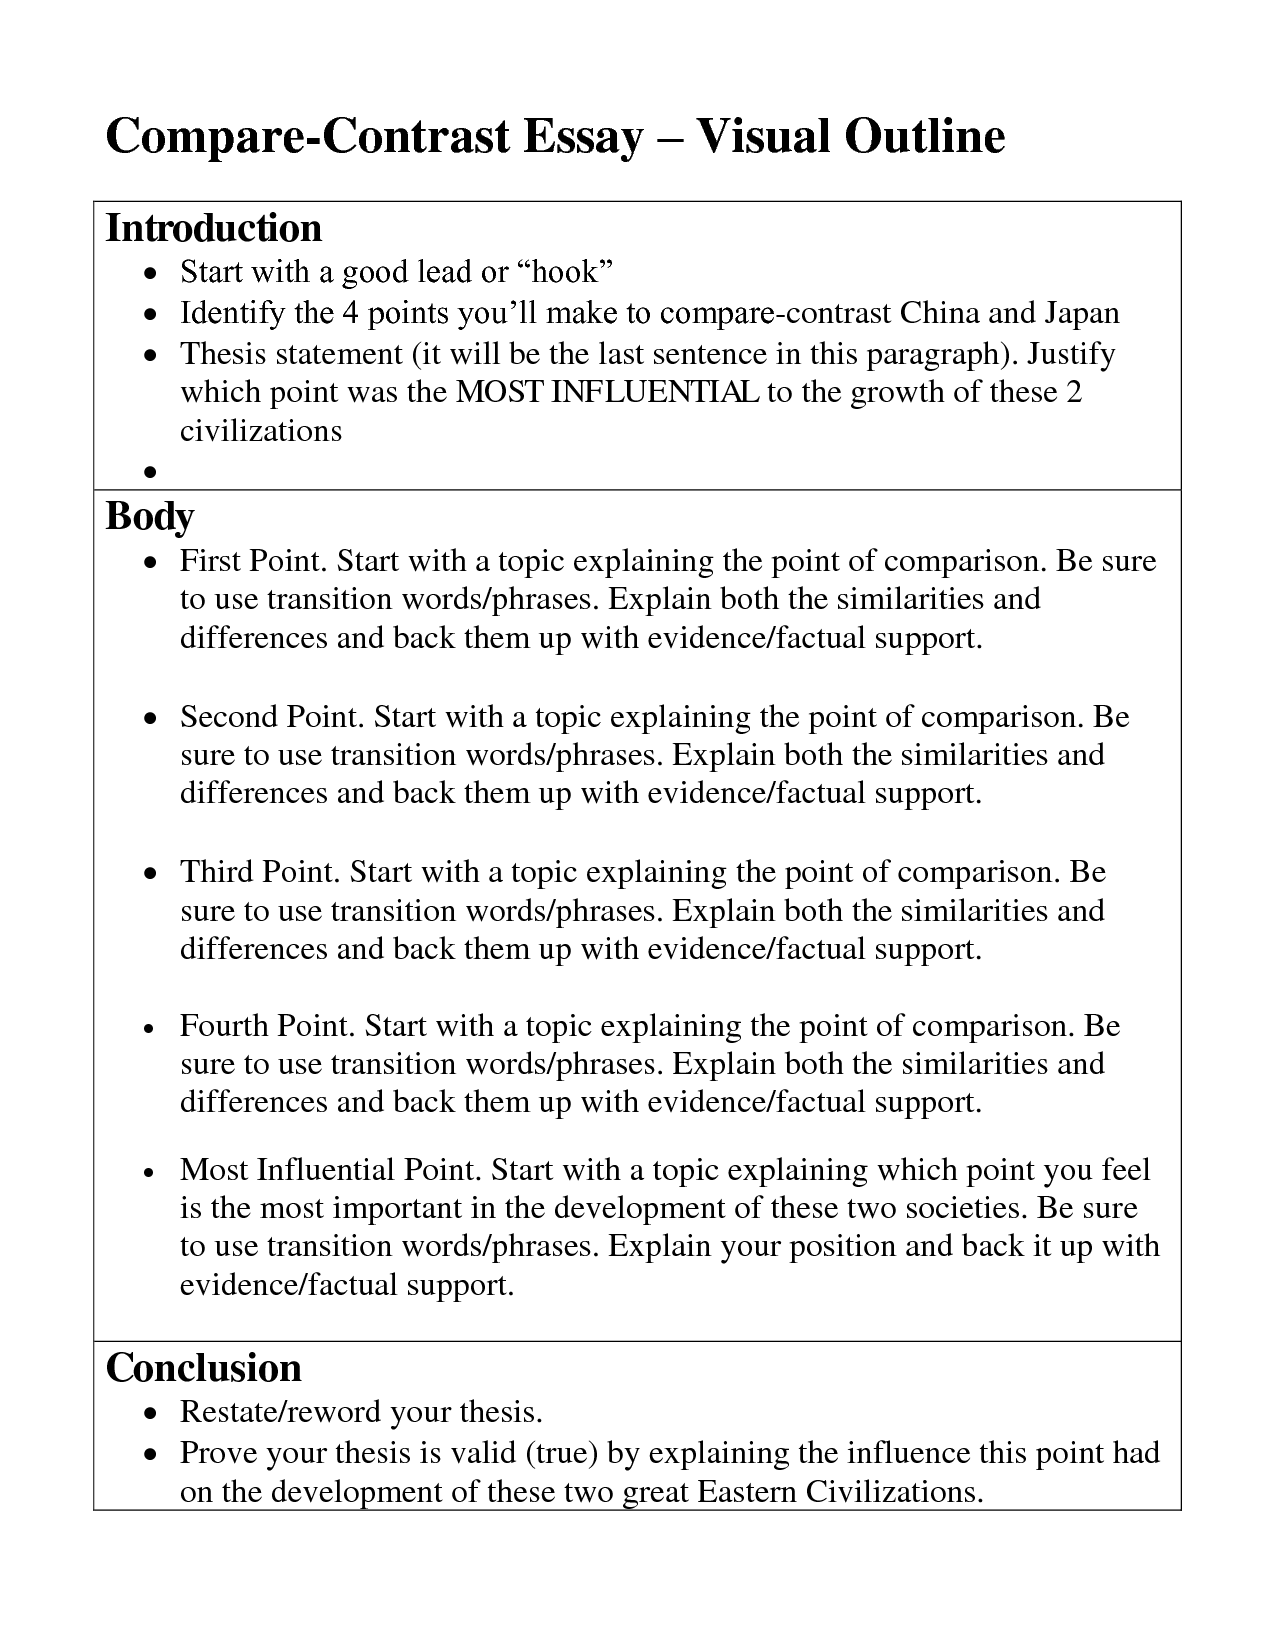 005 How To Write Compare And Contrast Essay Outstanding A On Two Poems An Introduction Conclusion For Middle School